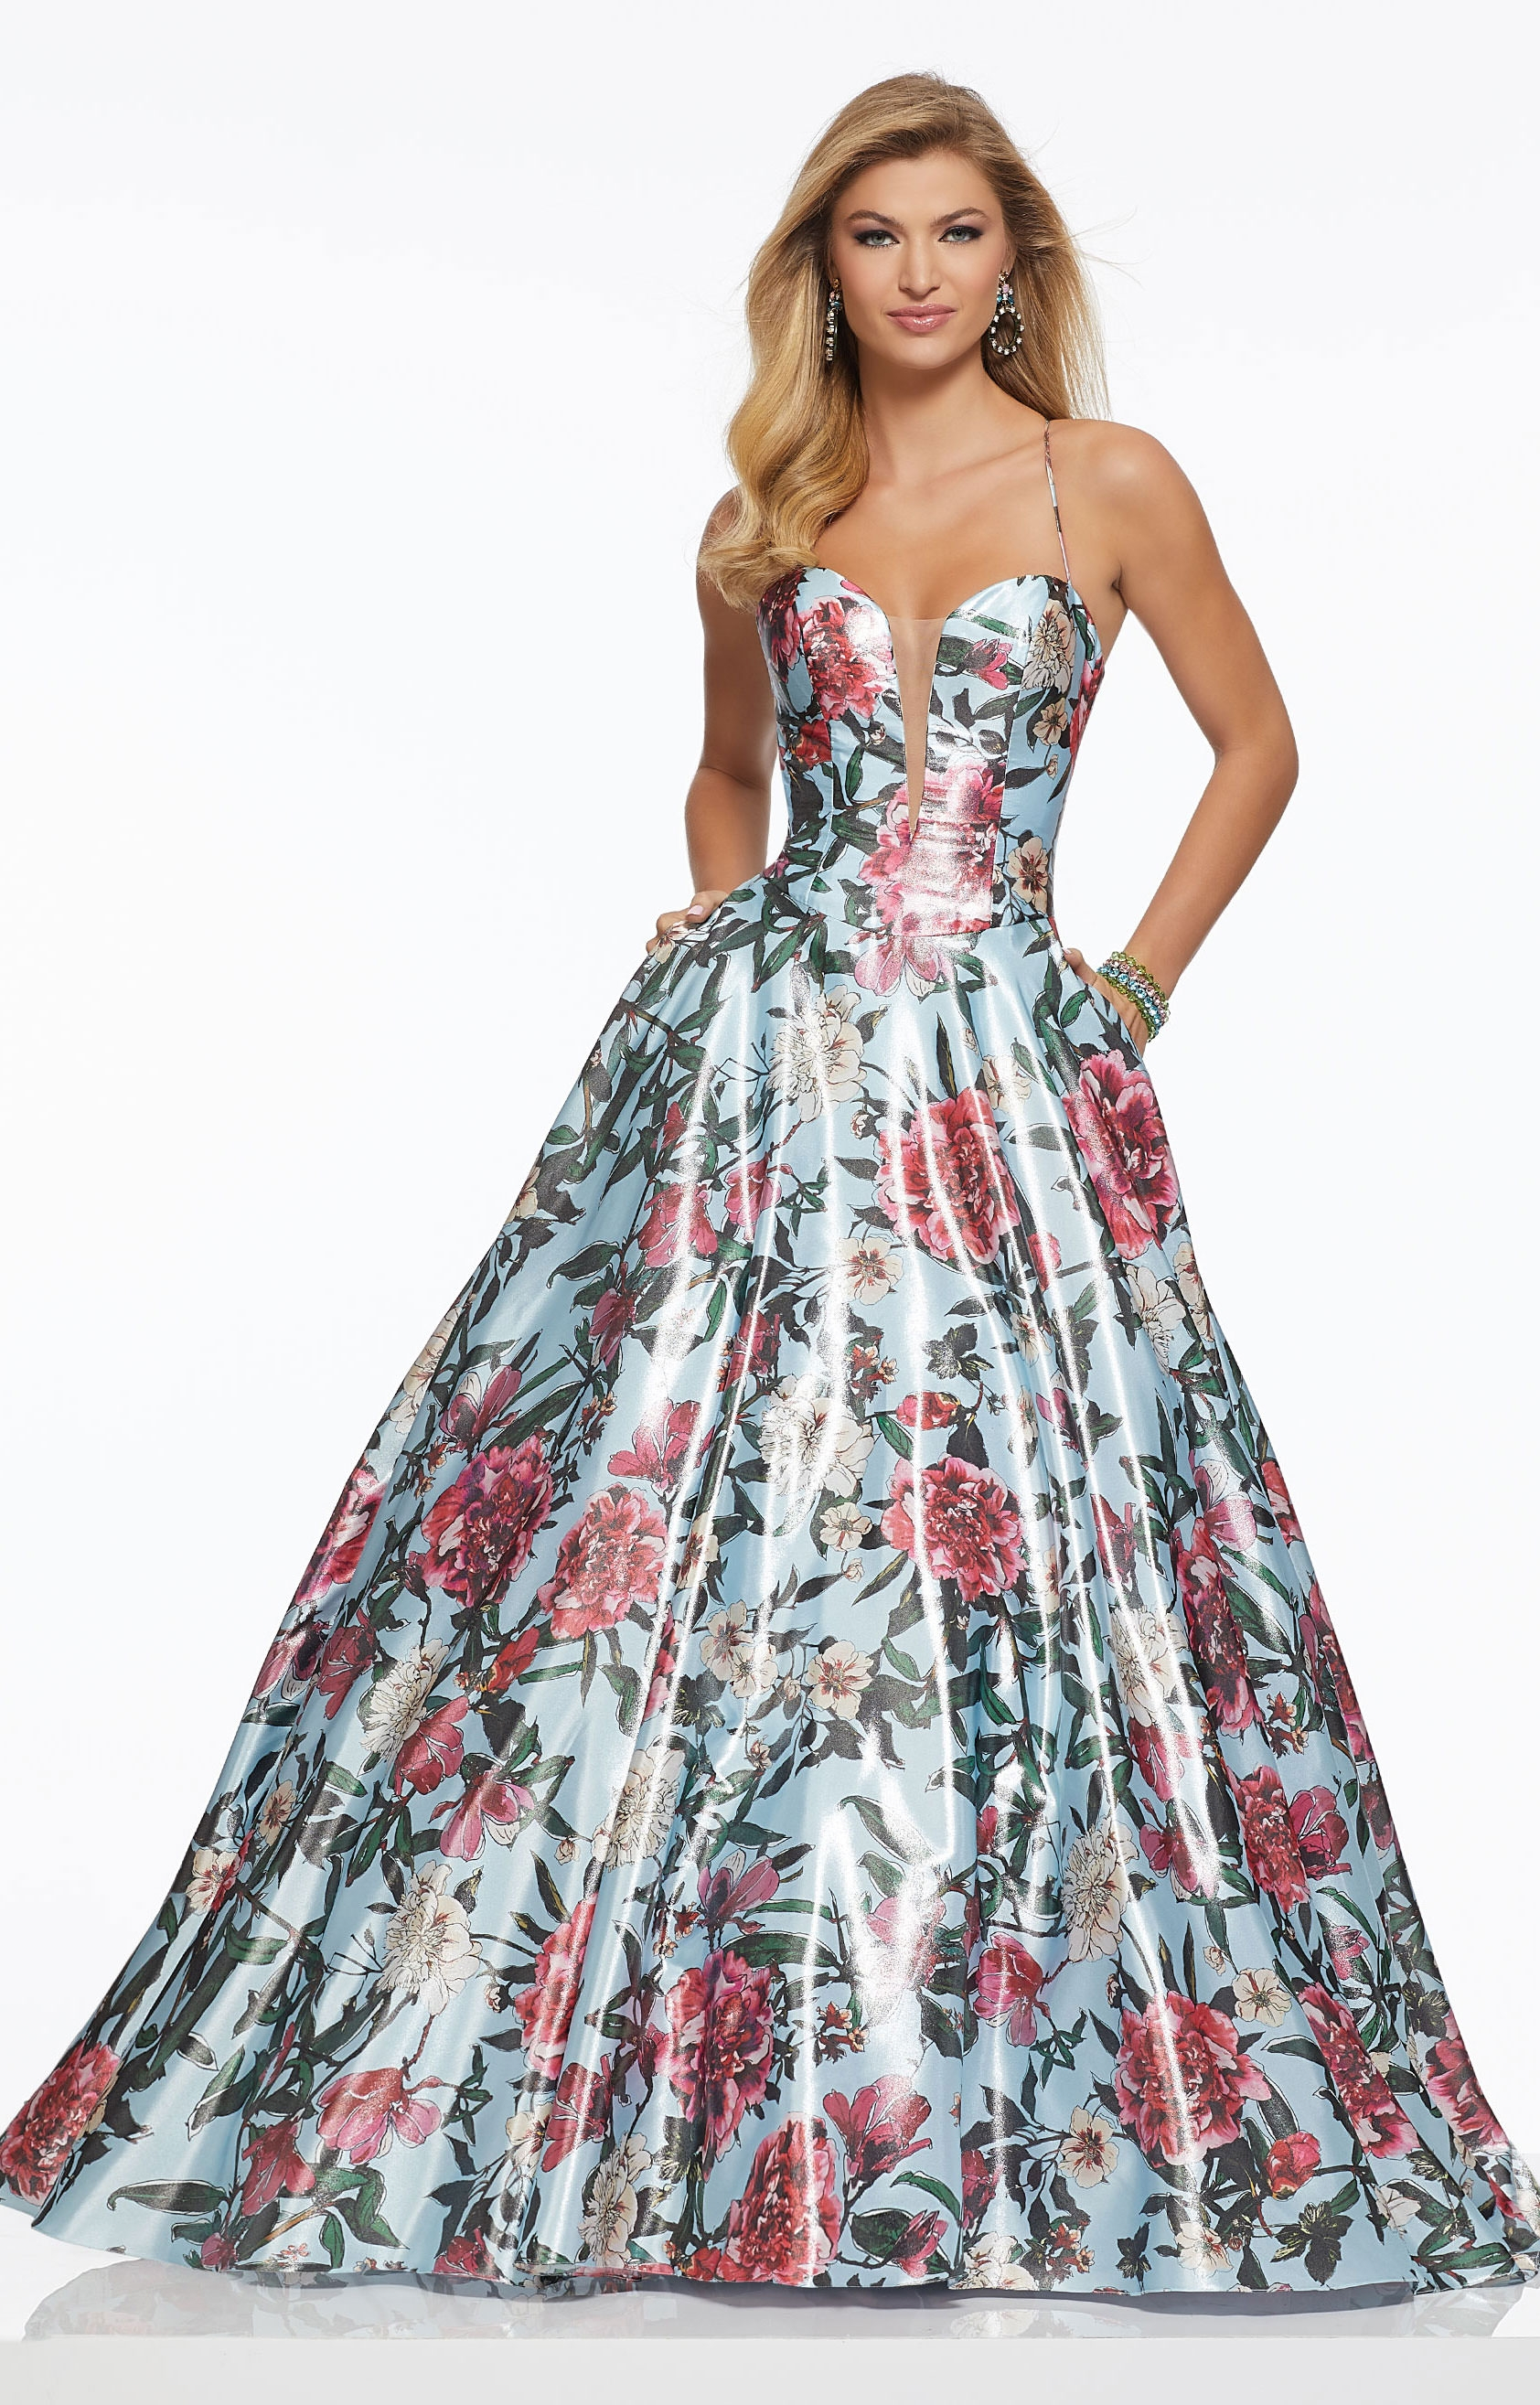 bd36b3006f1 Floral Homecoming Dresses With Pockets - Gomes Weine AG